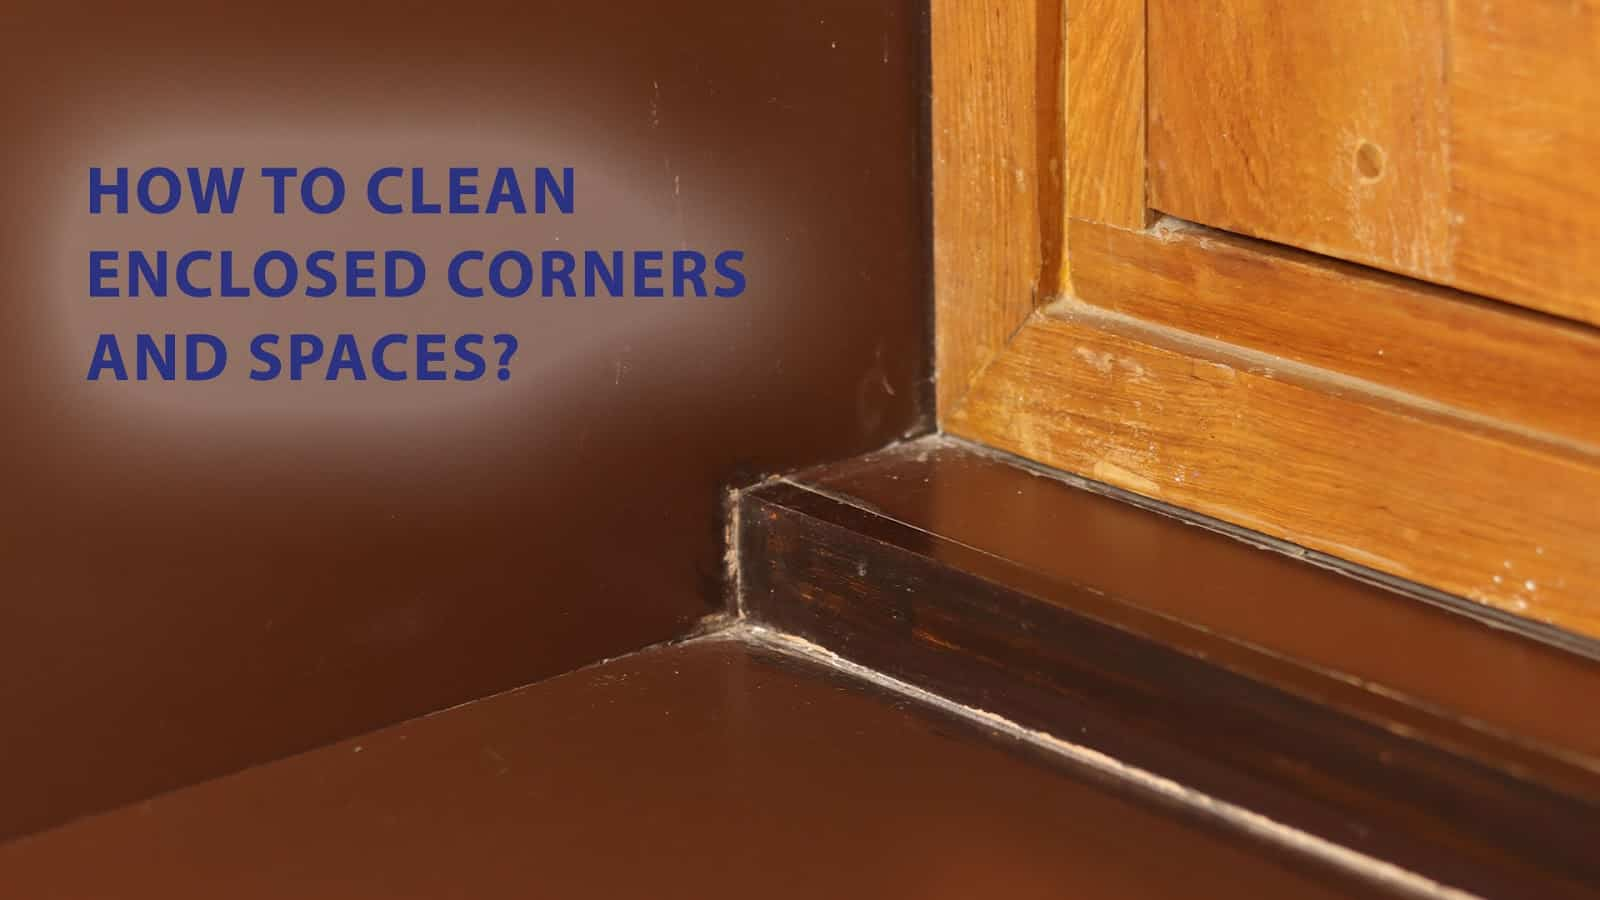 how to clean enclosed corners and spaces